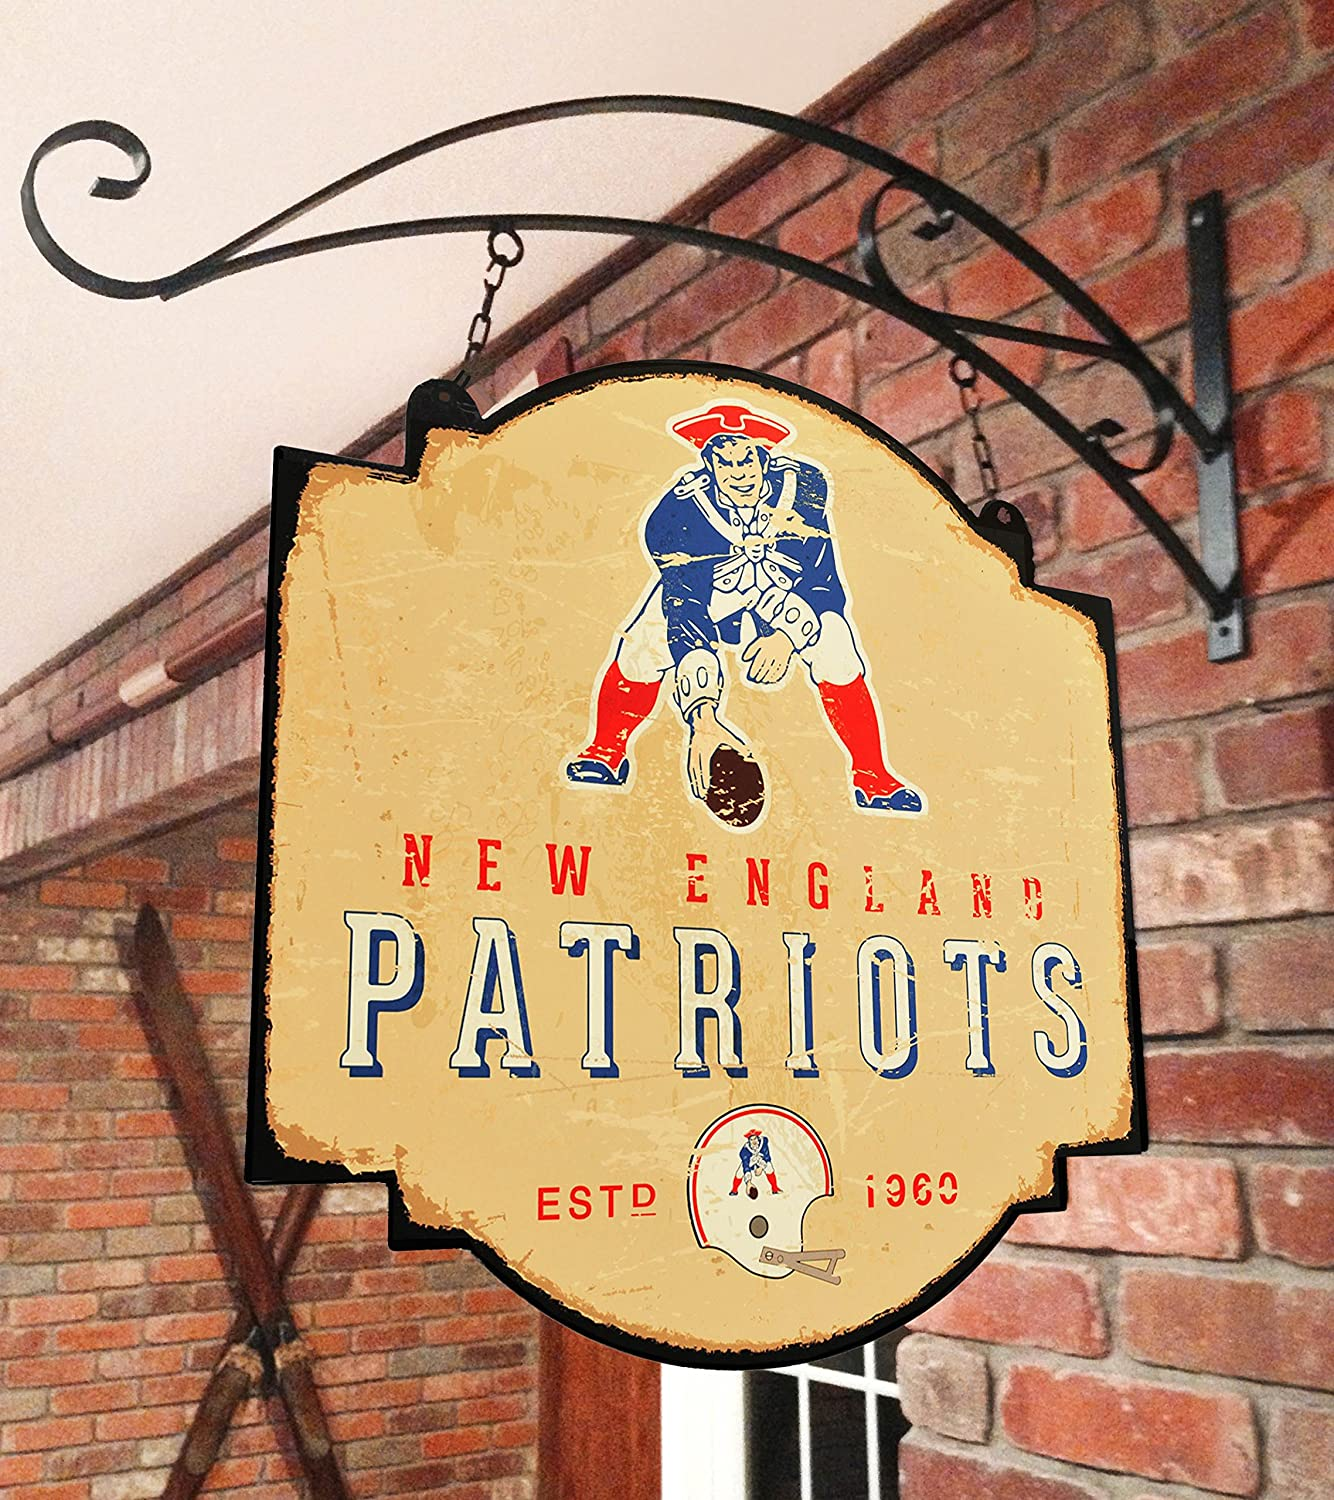 Amazon.com: NFL New England Patriots taberna Sign, Las ...